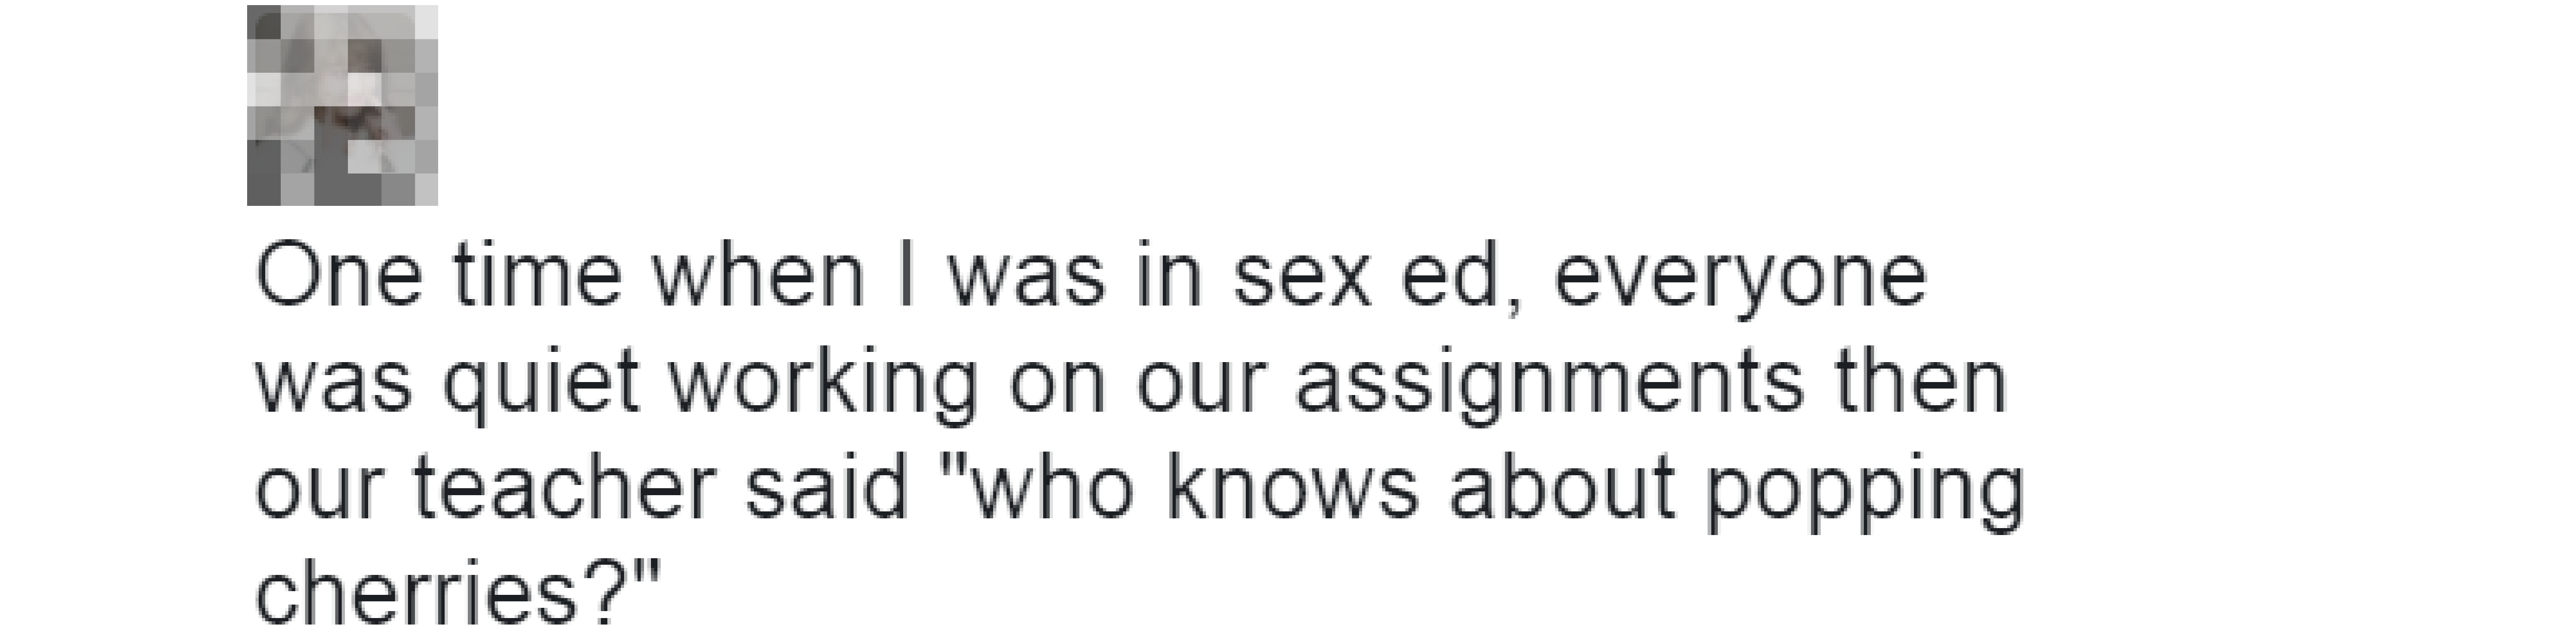 Sex ed tweets 3